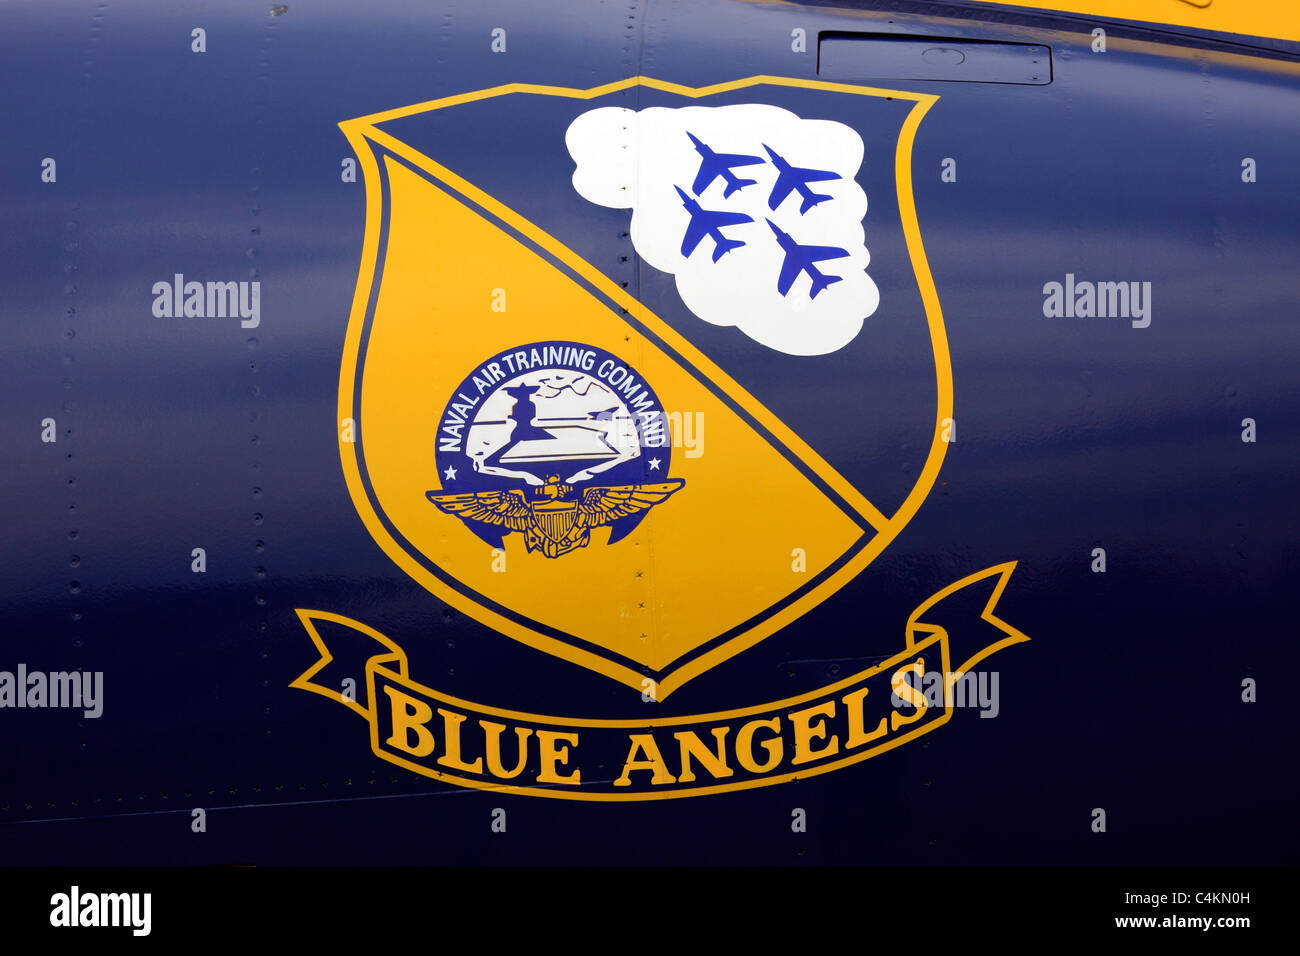 Logo of the U.S. Navy Blue Angels precision flying team on side of aircraft, USS Intrepid Aircraft Carrier museum - Stock Image